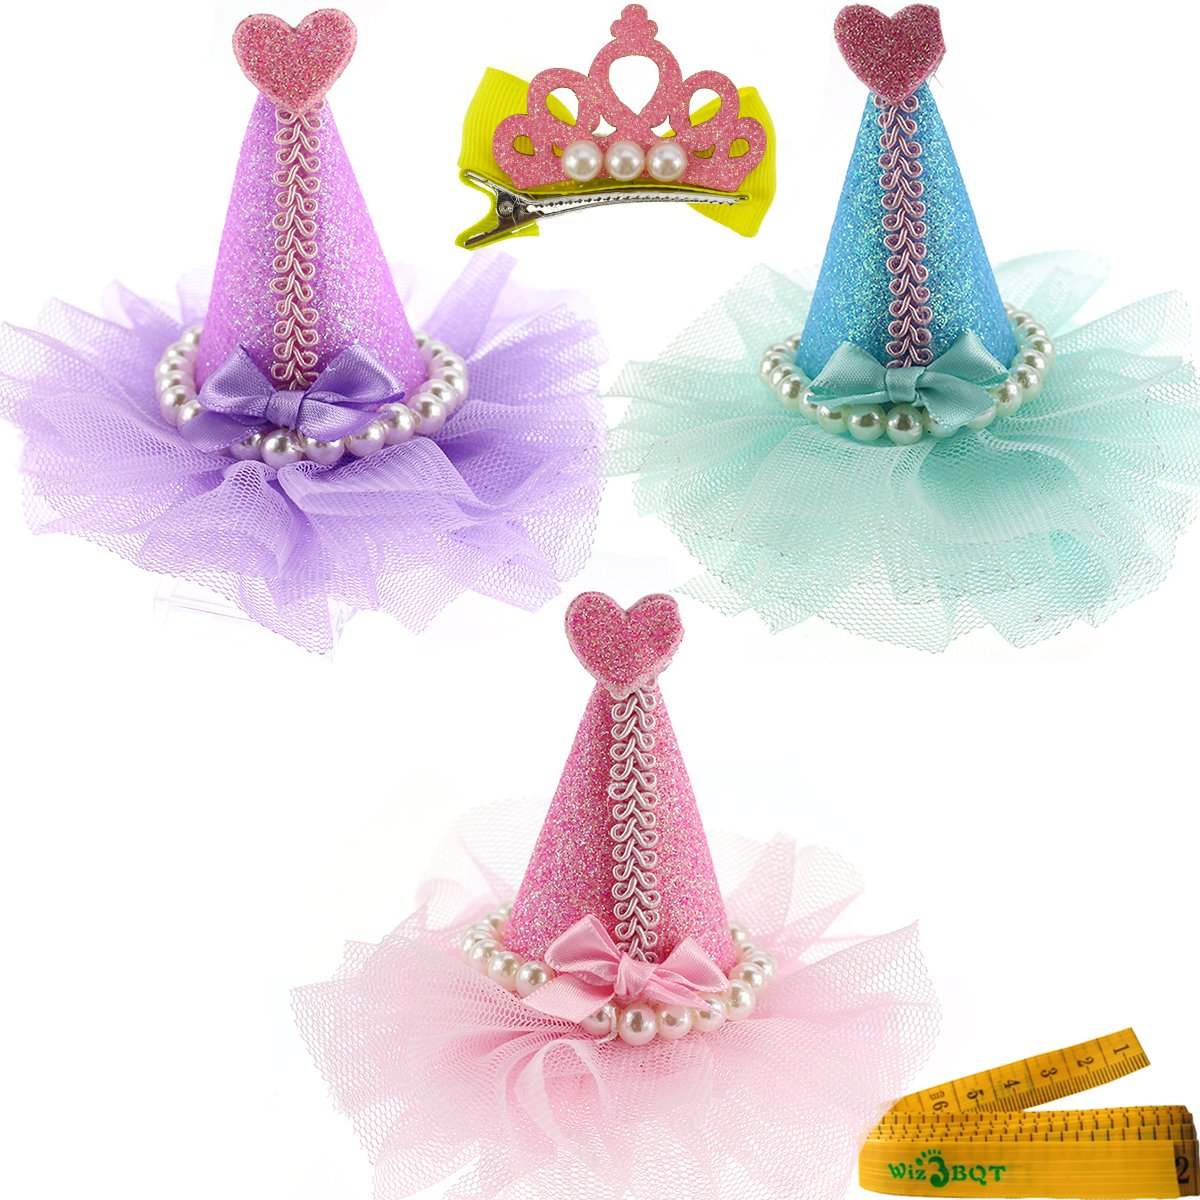 Details About 3 Pcs Adorable Cute Cat Dog Pet Birthday Party Hat Shaped Hair Clips And 1